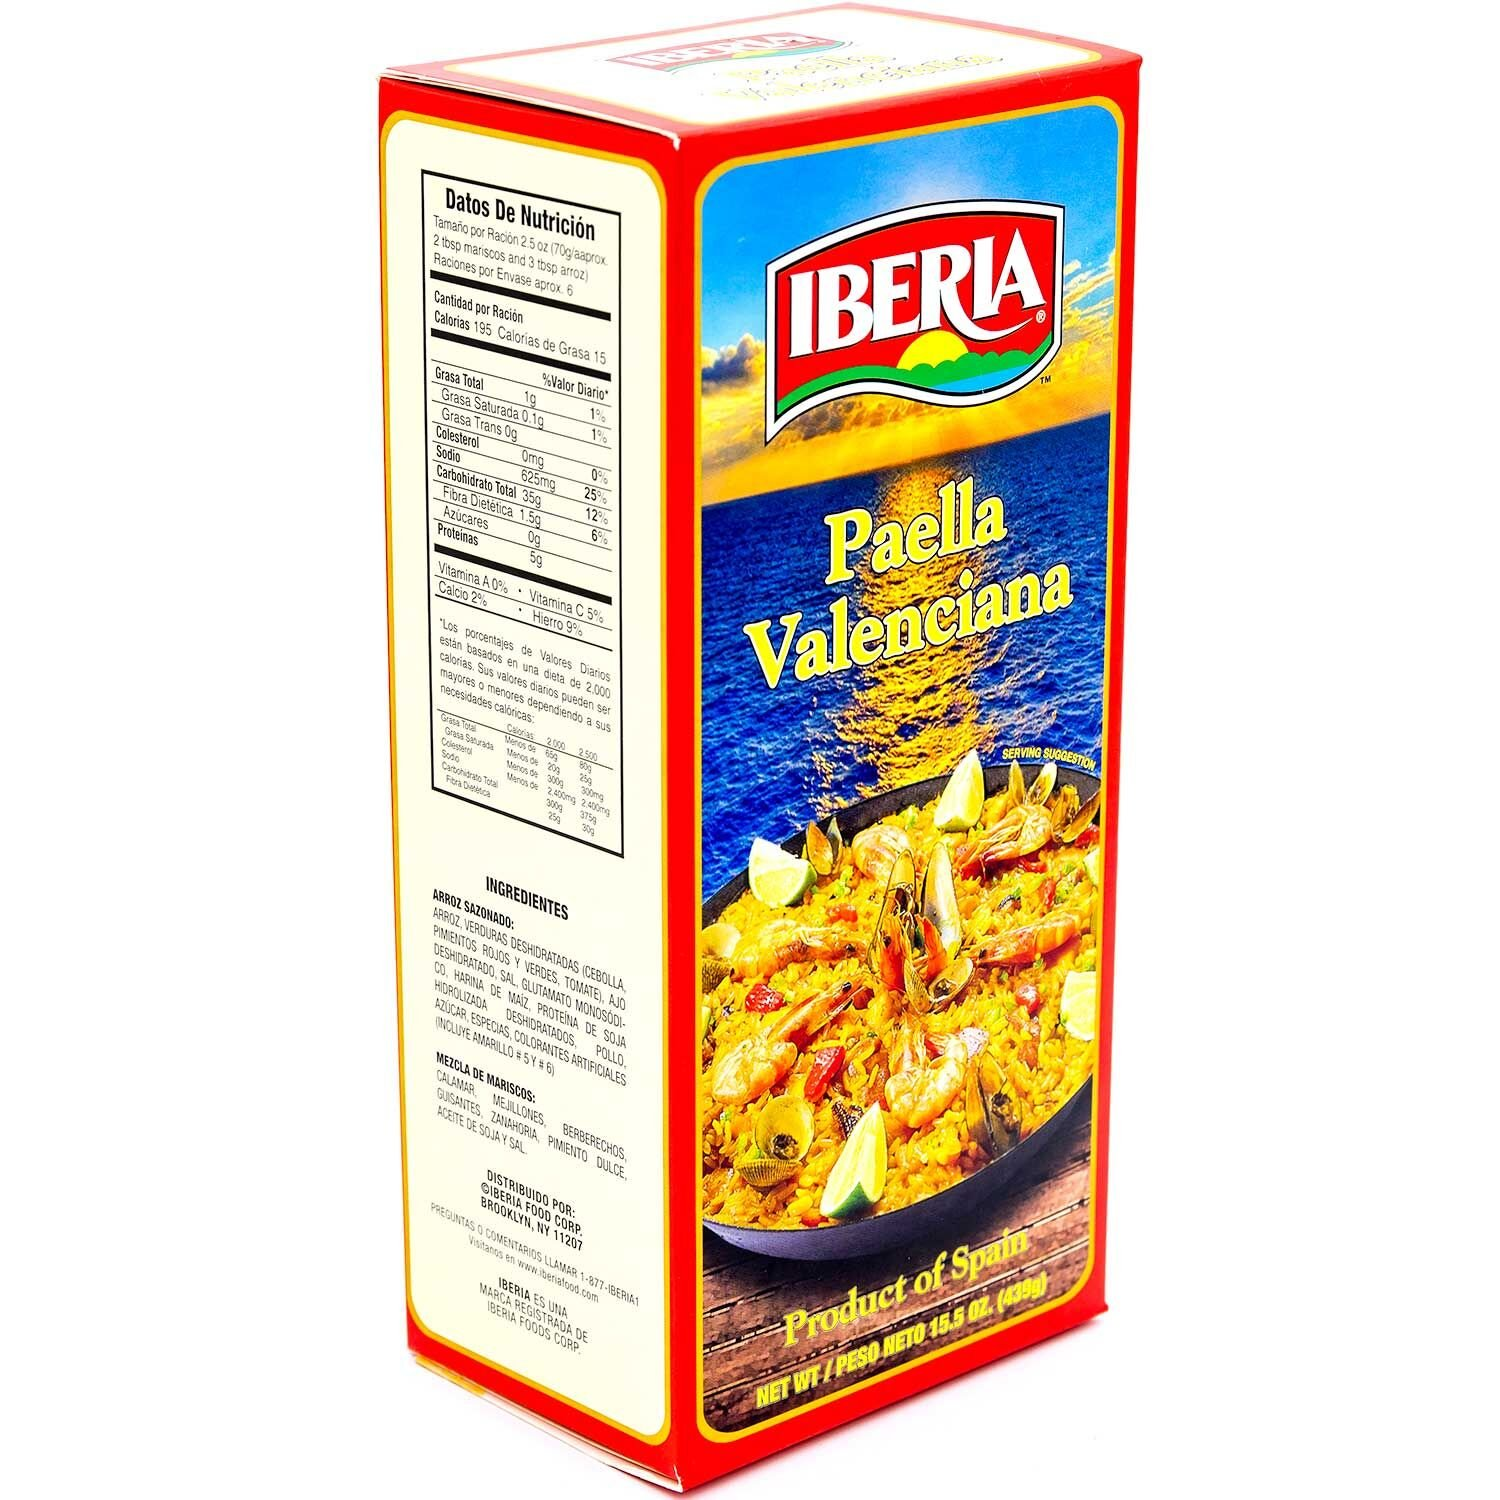 Amazon.com : Iberia Paella Valenciana, Yellow Rice and Seafood Dinner, 15.5 Ounce : Packaged Rice Paella : Grocery & Gourmet Food